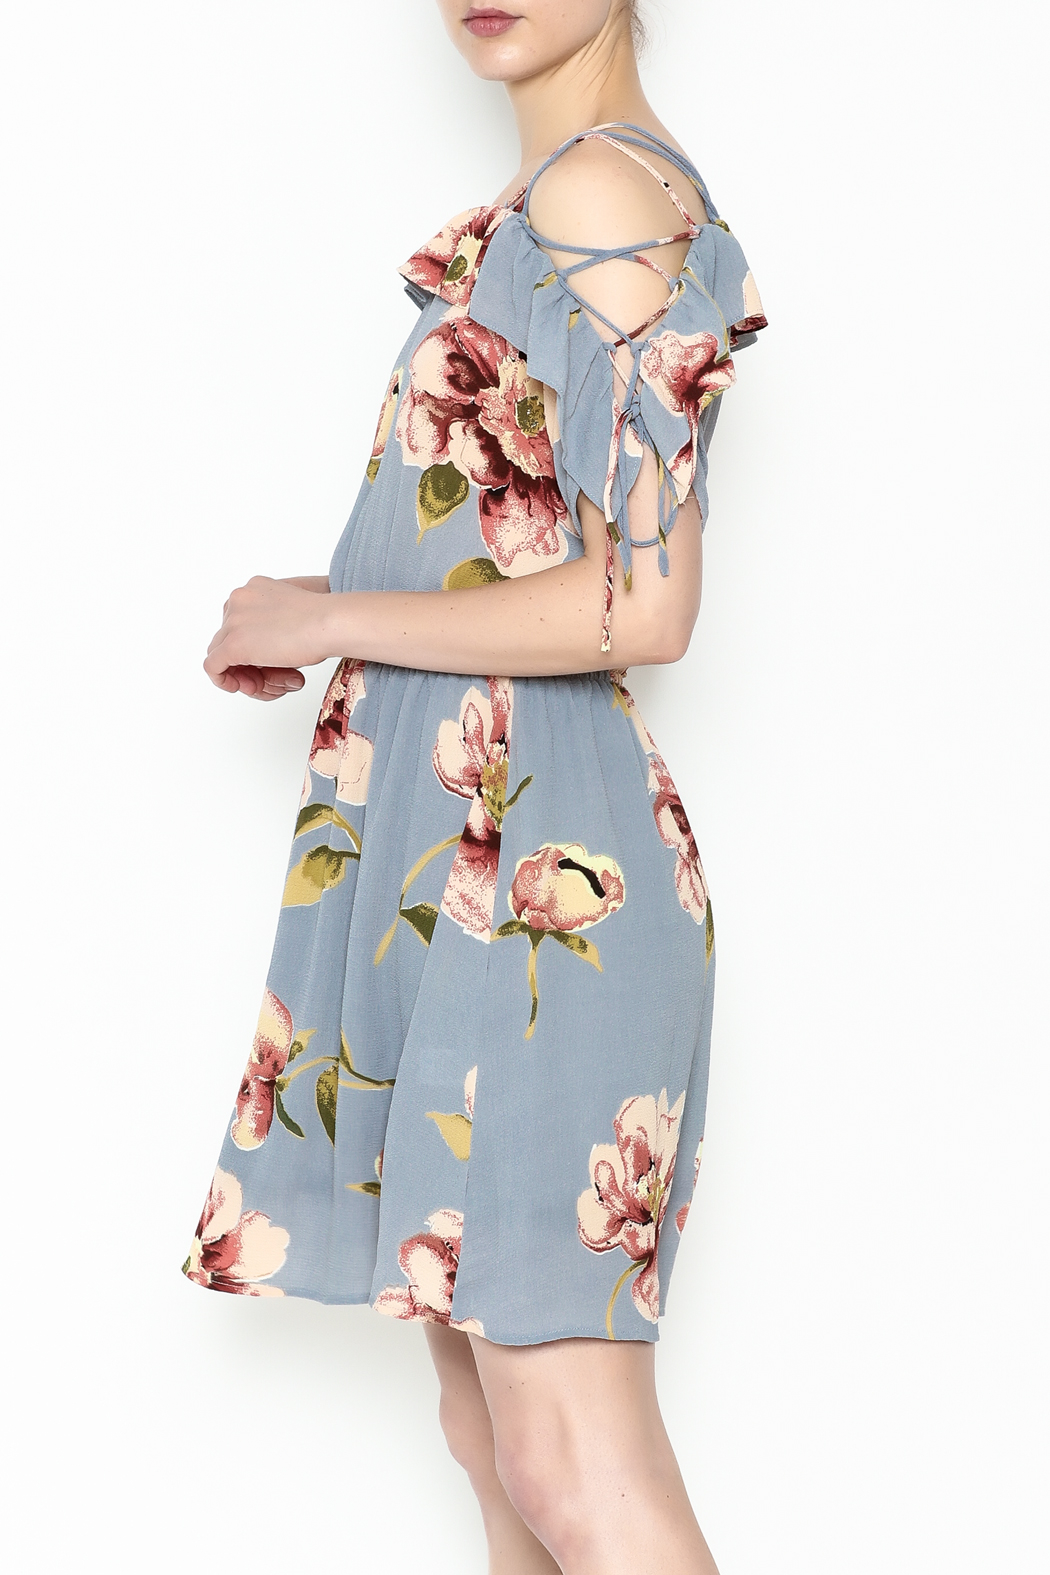 y&i clothing boutique Courtney Floral Dress - Main Image